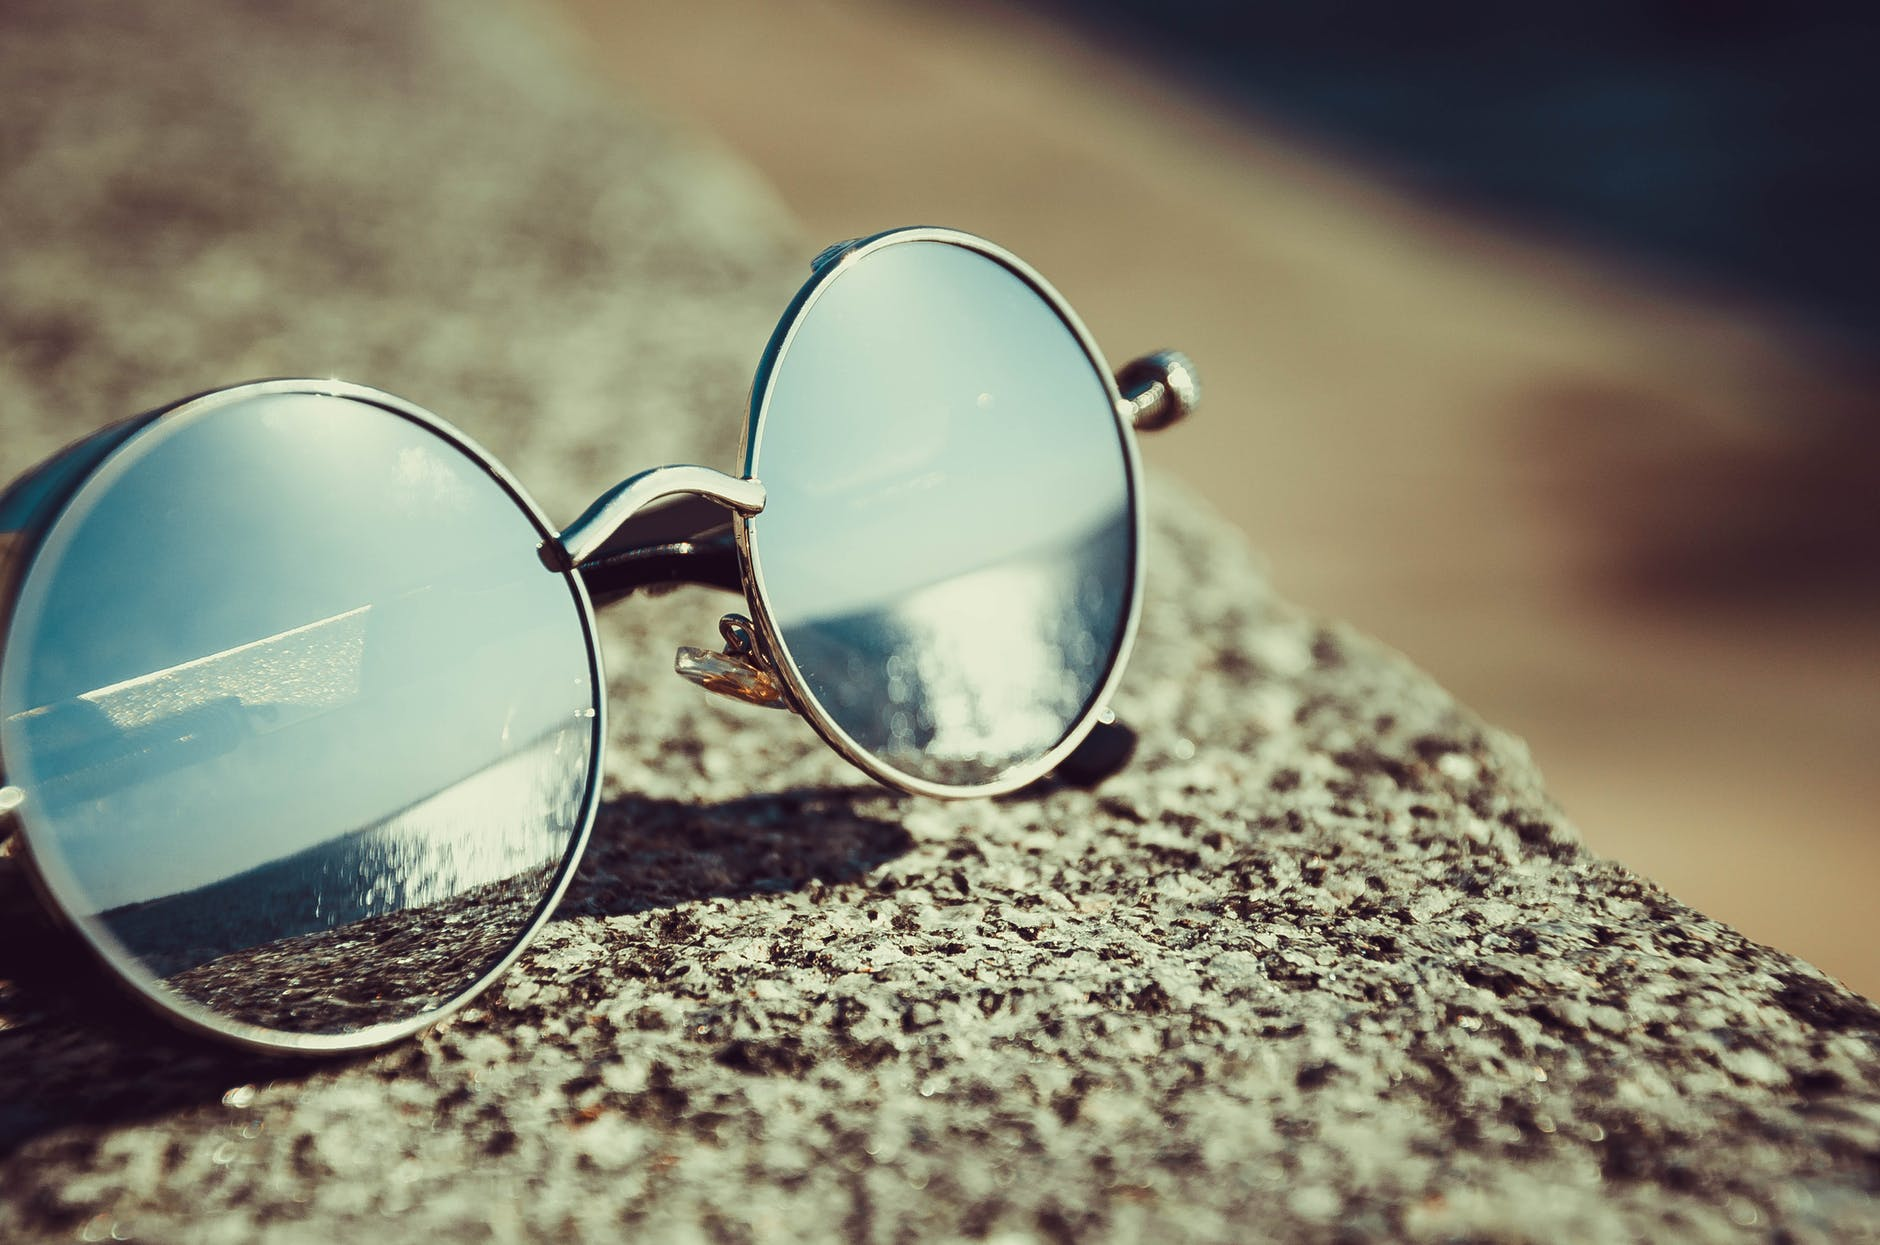 Buy glasses from trustworthy site